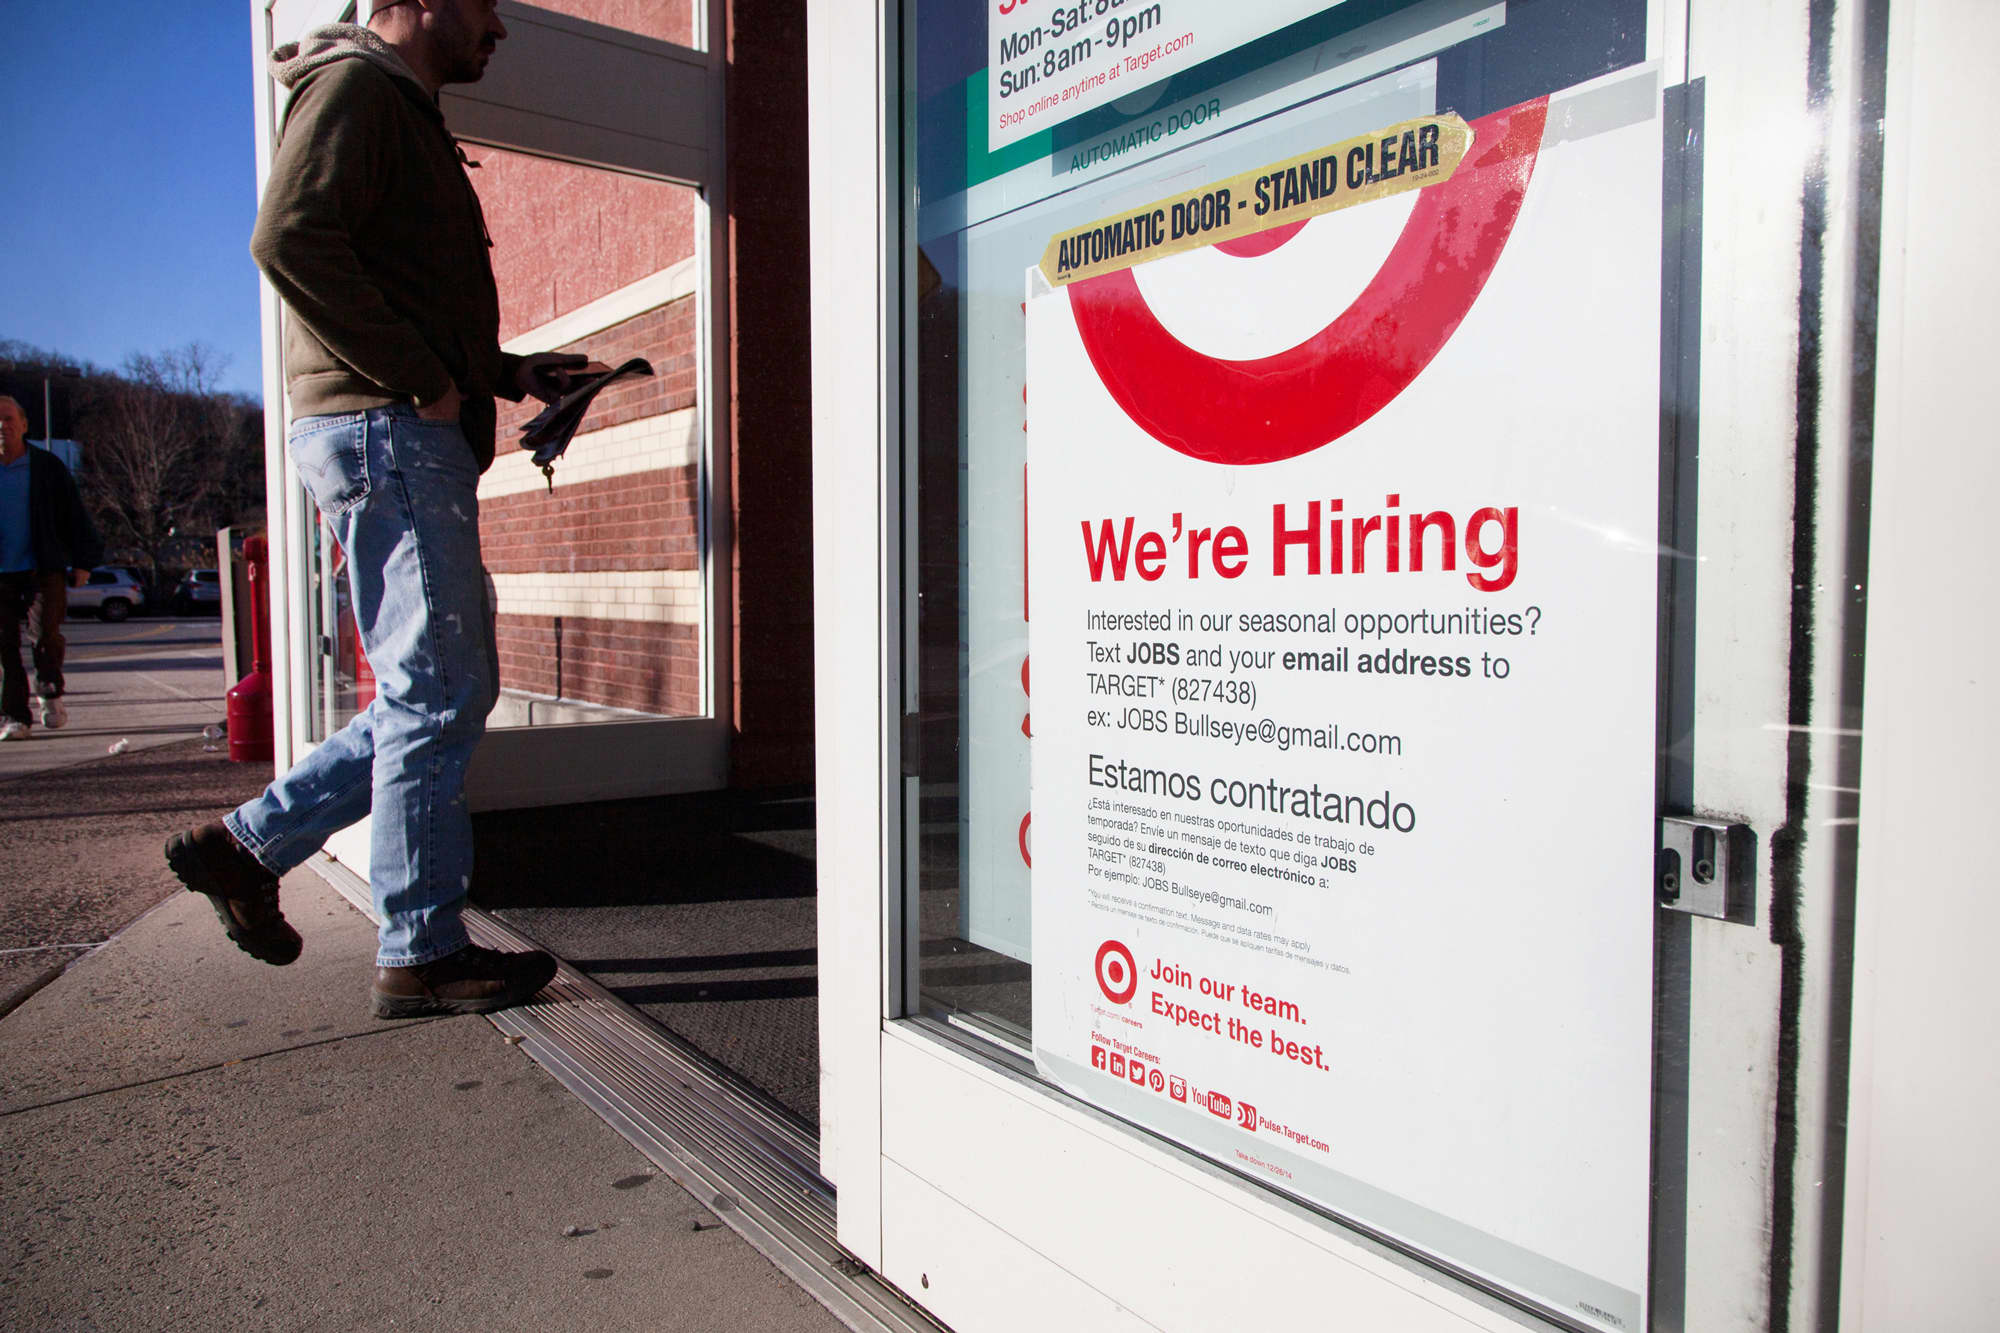 us jobs market seen fairly healthy despite slowing economy